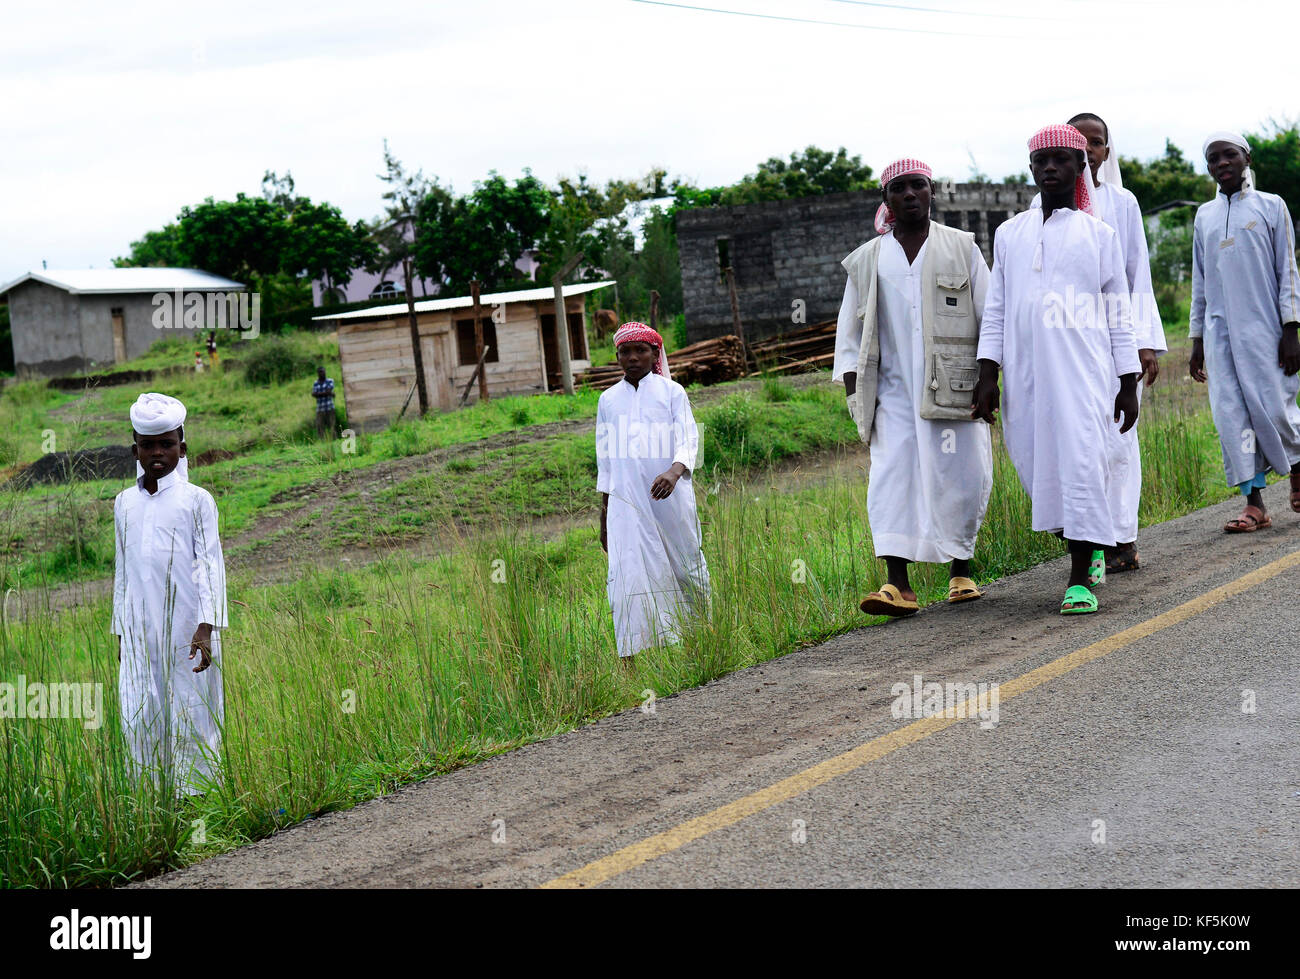 Tanzanian Muslim youth dressed in Arab clothing as many schools are funded by the rich gulf countries. - Stock Image